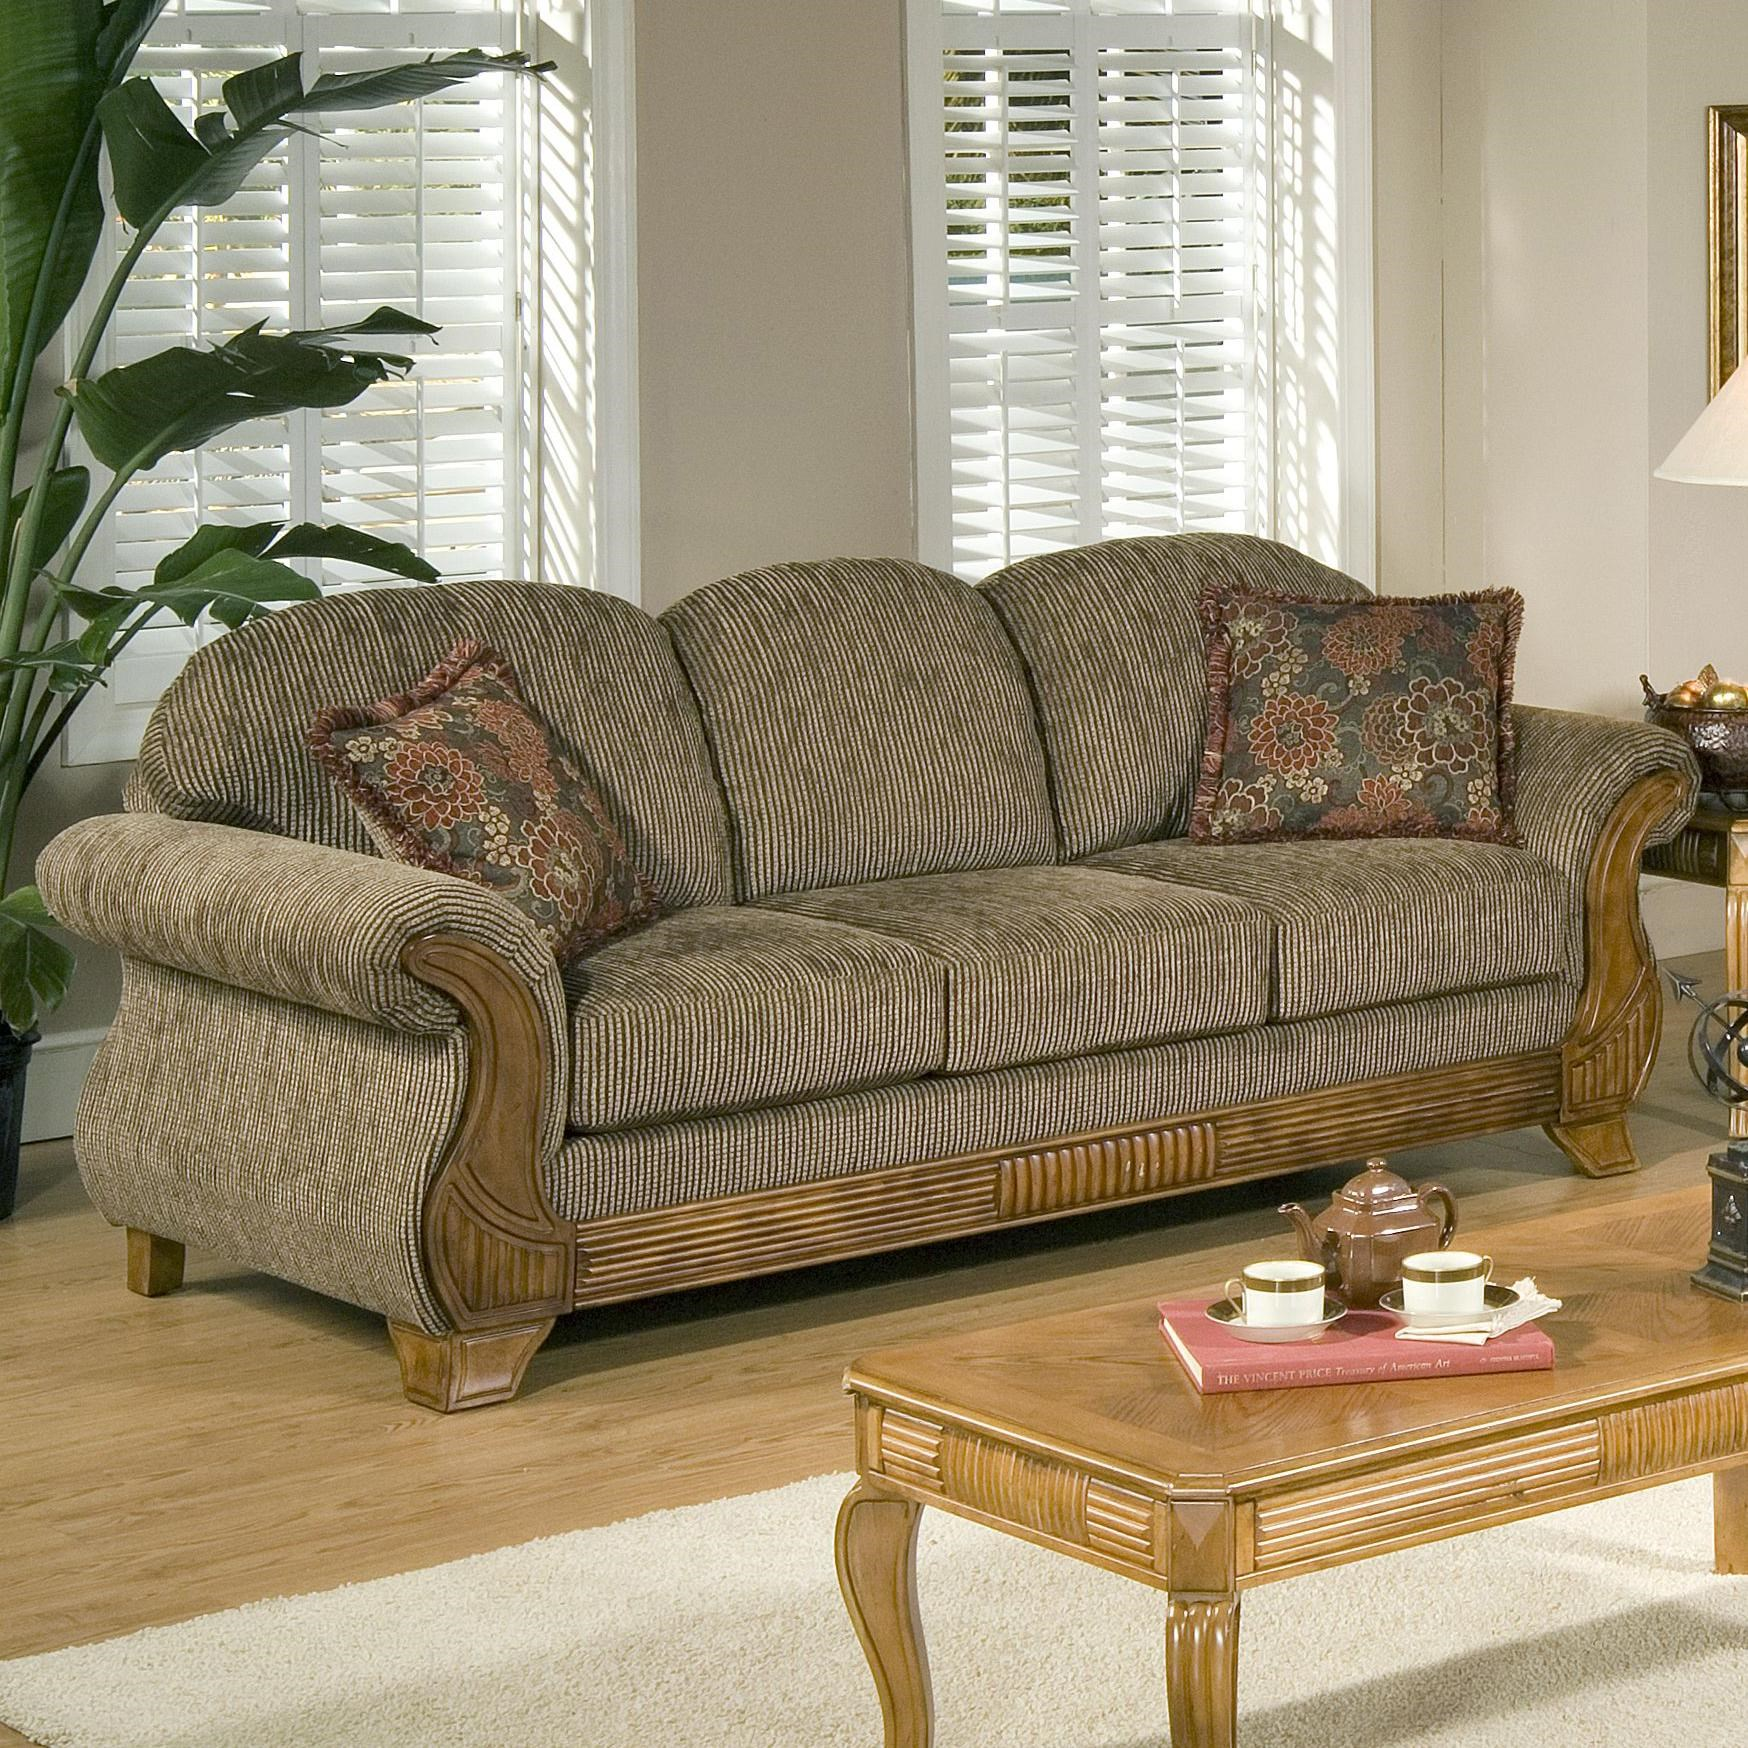 Serta Upholstery By Hughes Furniture 7400 Traditional Sofa With Classic  Wood Face Accents Part 9